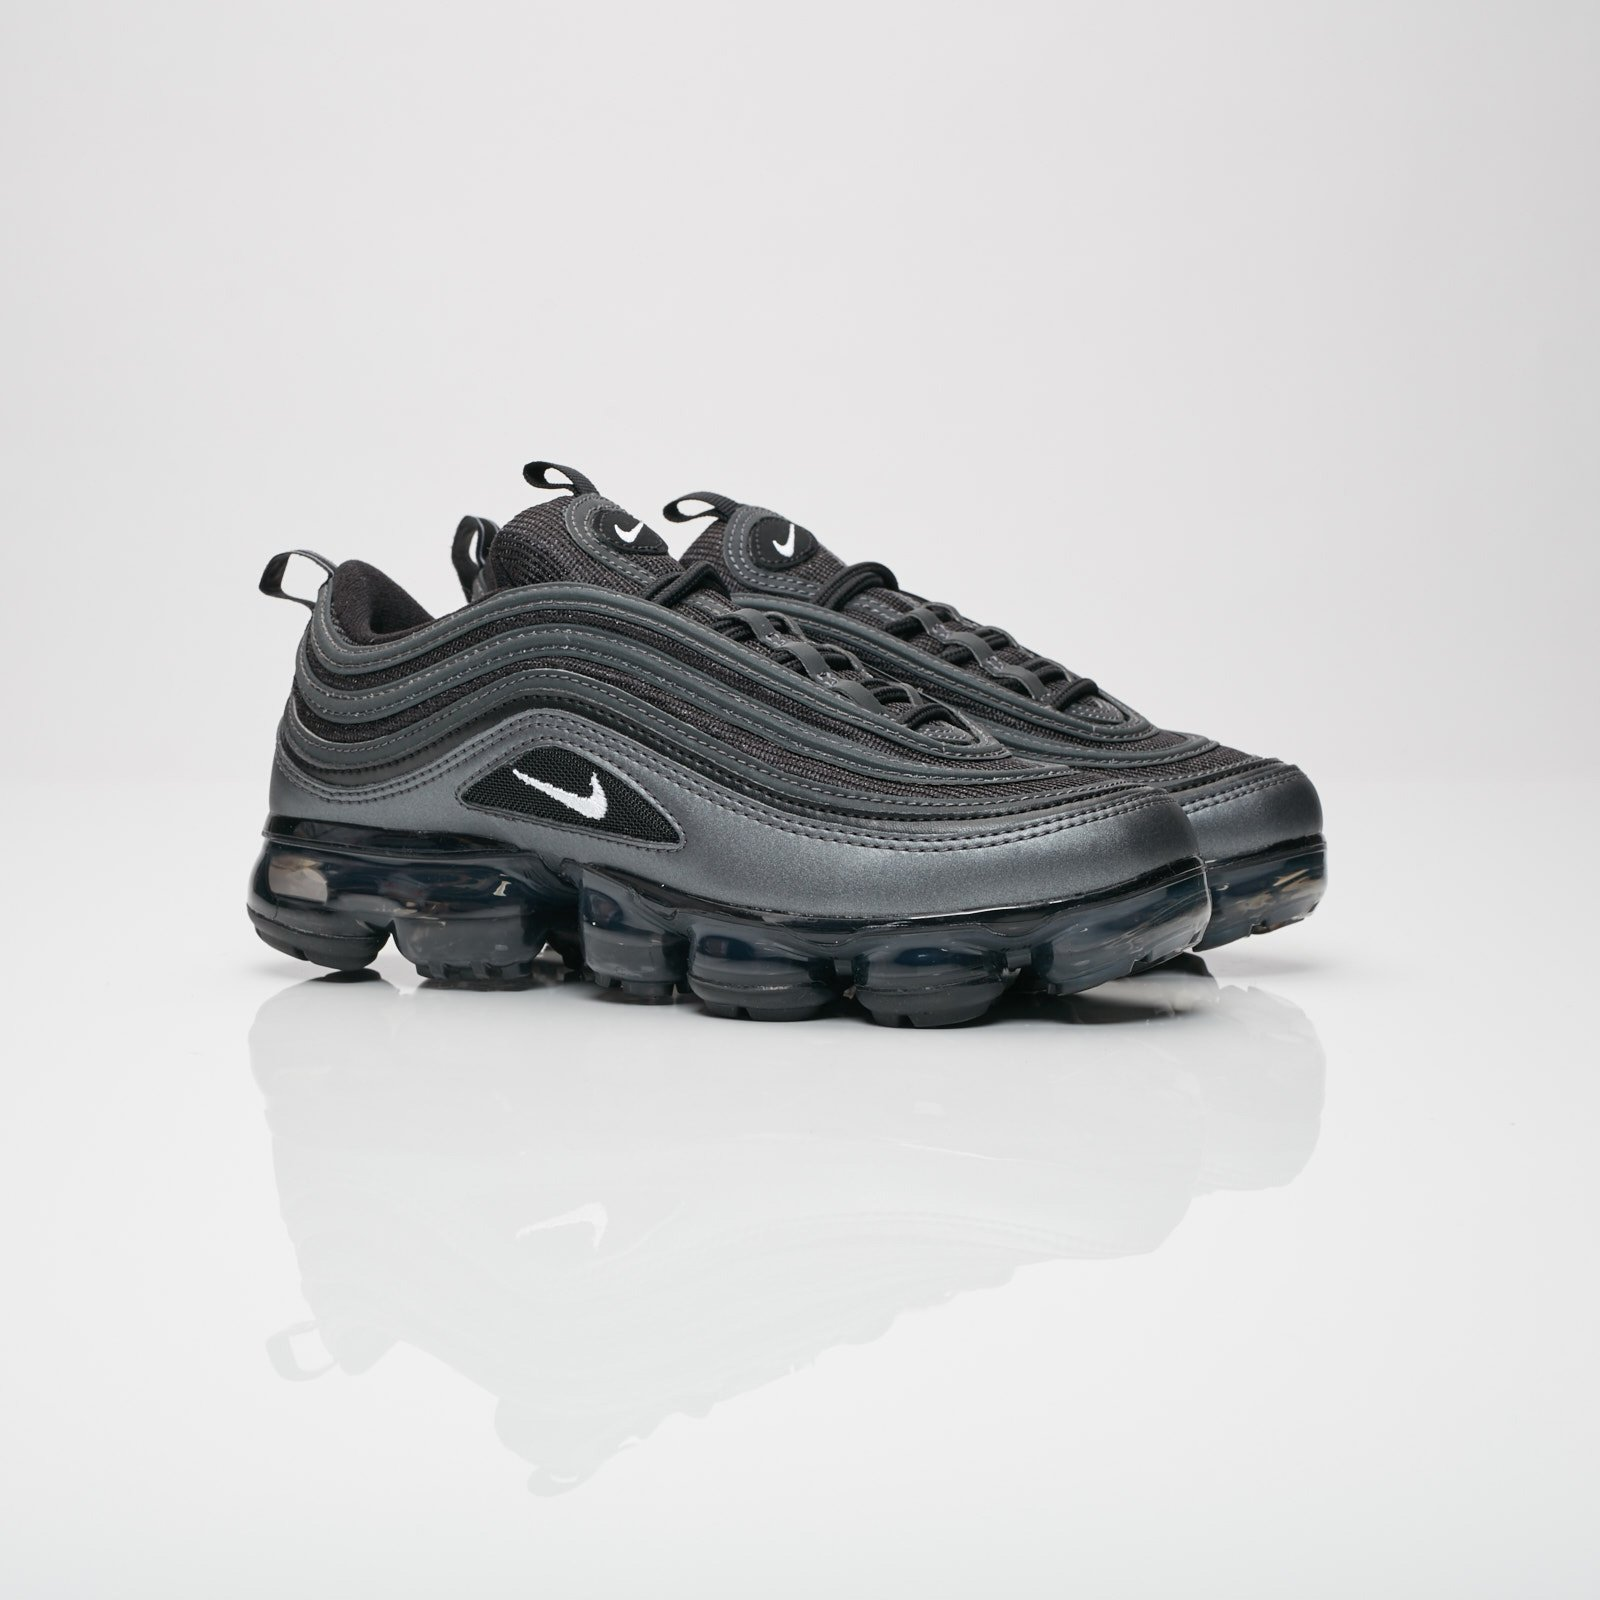 cheap for discount 1f2a7 e6aca Nike W Air Vapormax 97 - Ao4542-001 - Sneakersnstuff ...